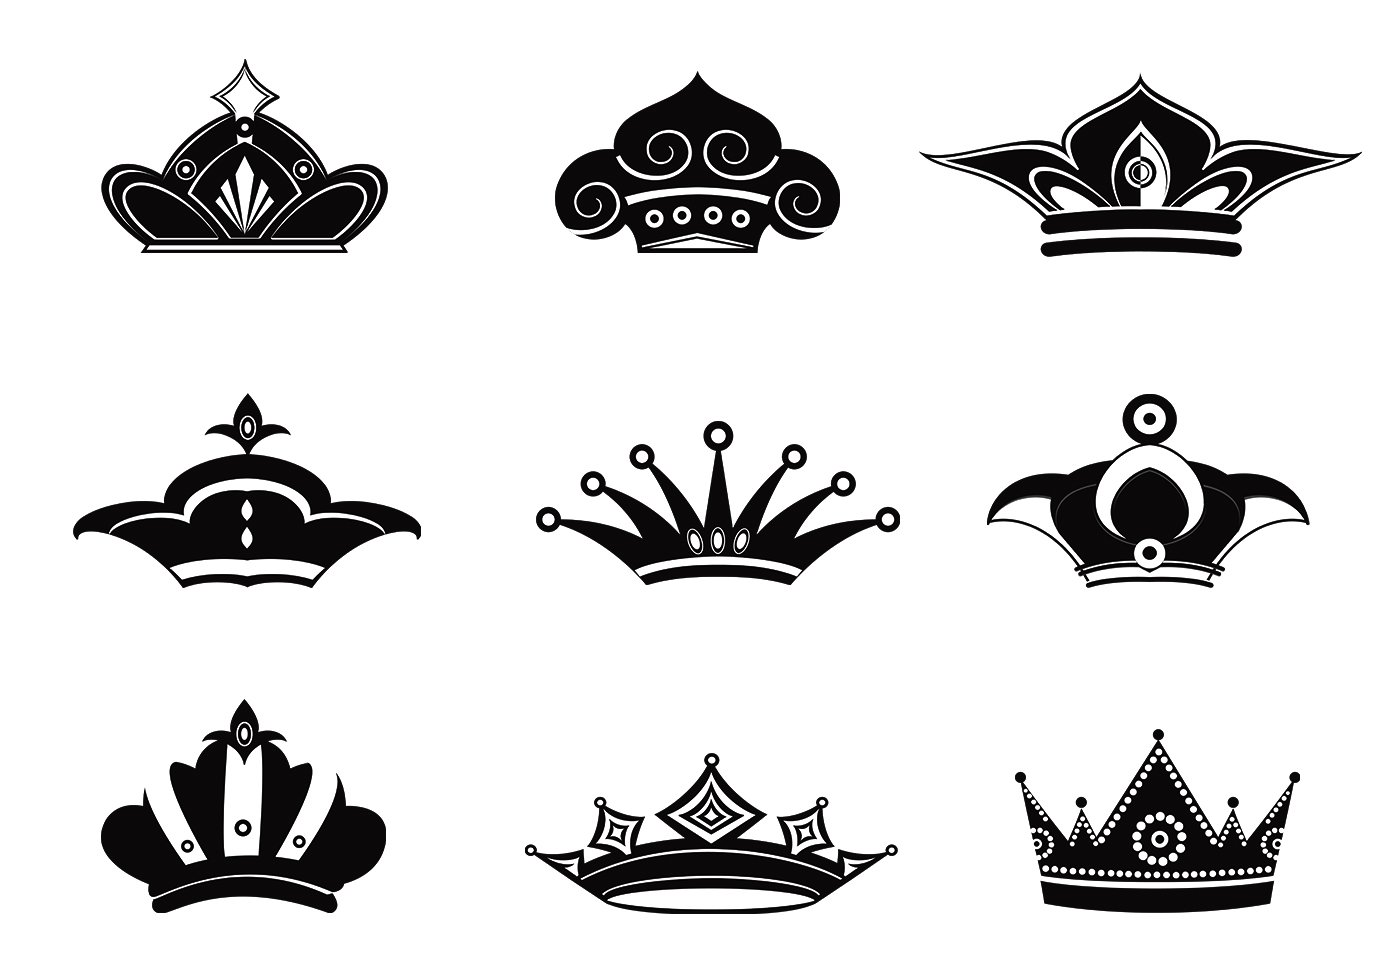 free vector tiara clip art - photo #41